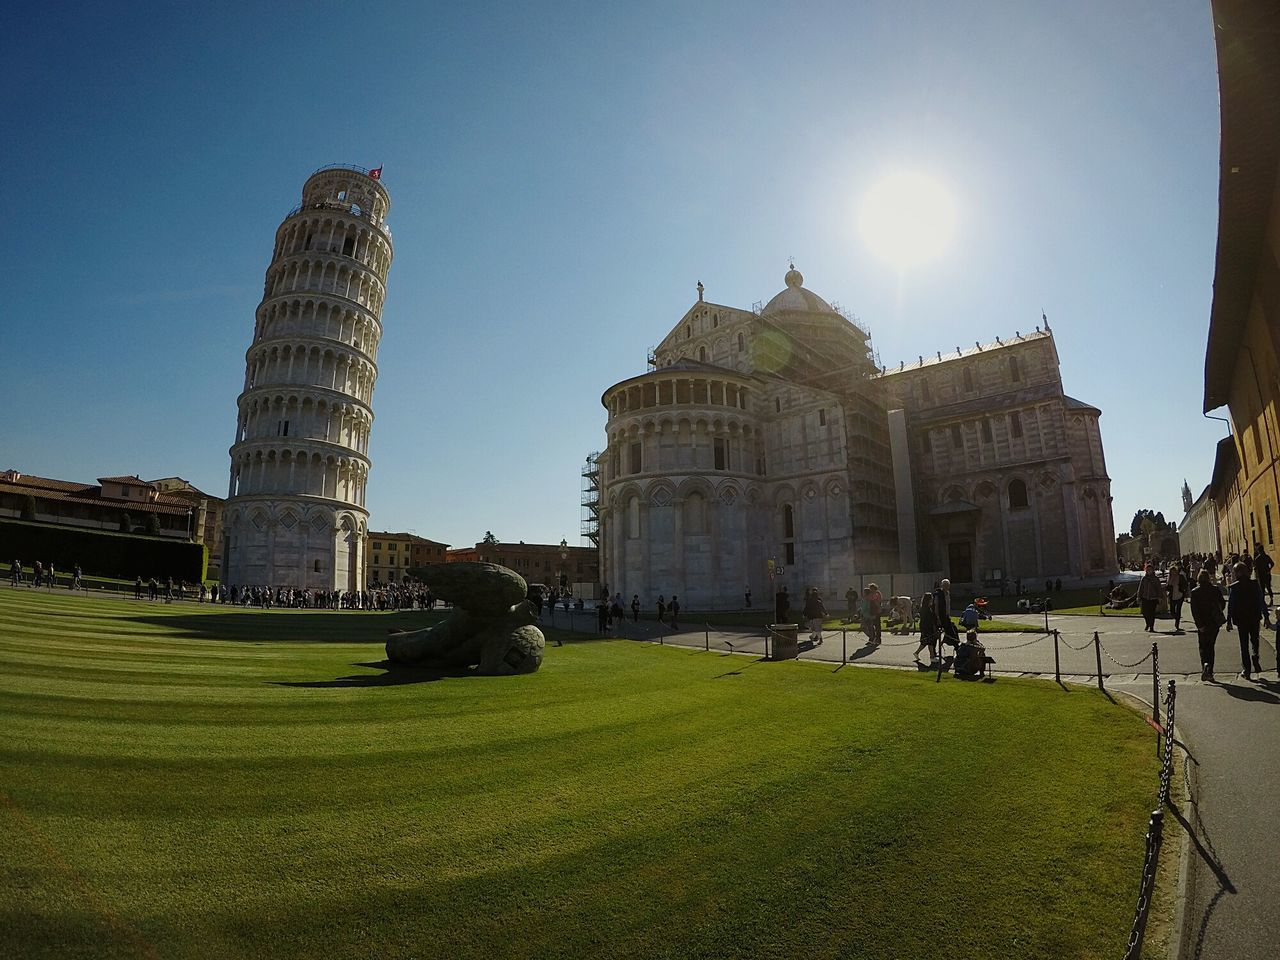 Architecture History Outdoors Building Exterior People City Sky Loves_team_members Tweegram Swag Italy Hero5black EyeEm Best Shots Toscana Pisa Tower High Angle View Amazing Tourism Travel Destinations Goprophotography All_shots Landscape Cute IGDaily Superview